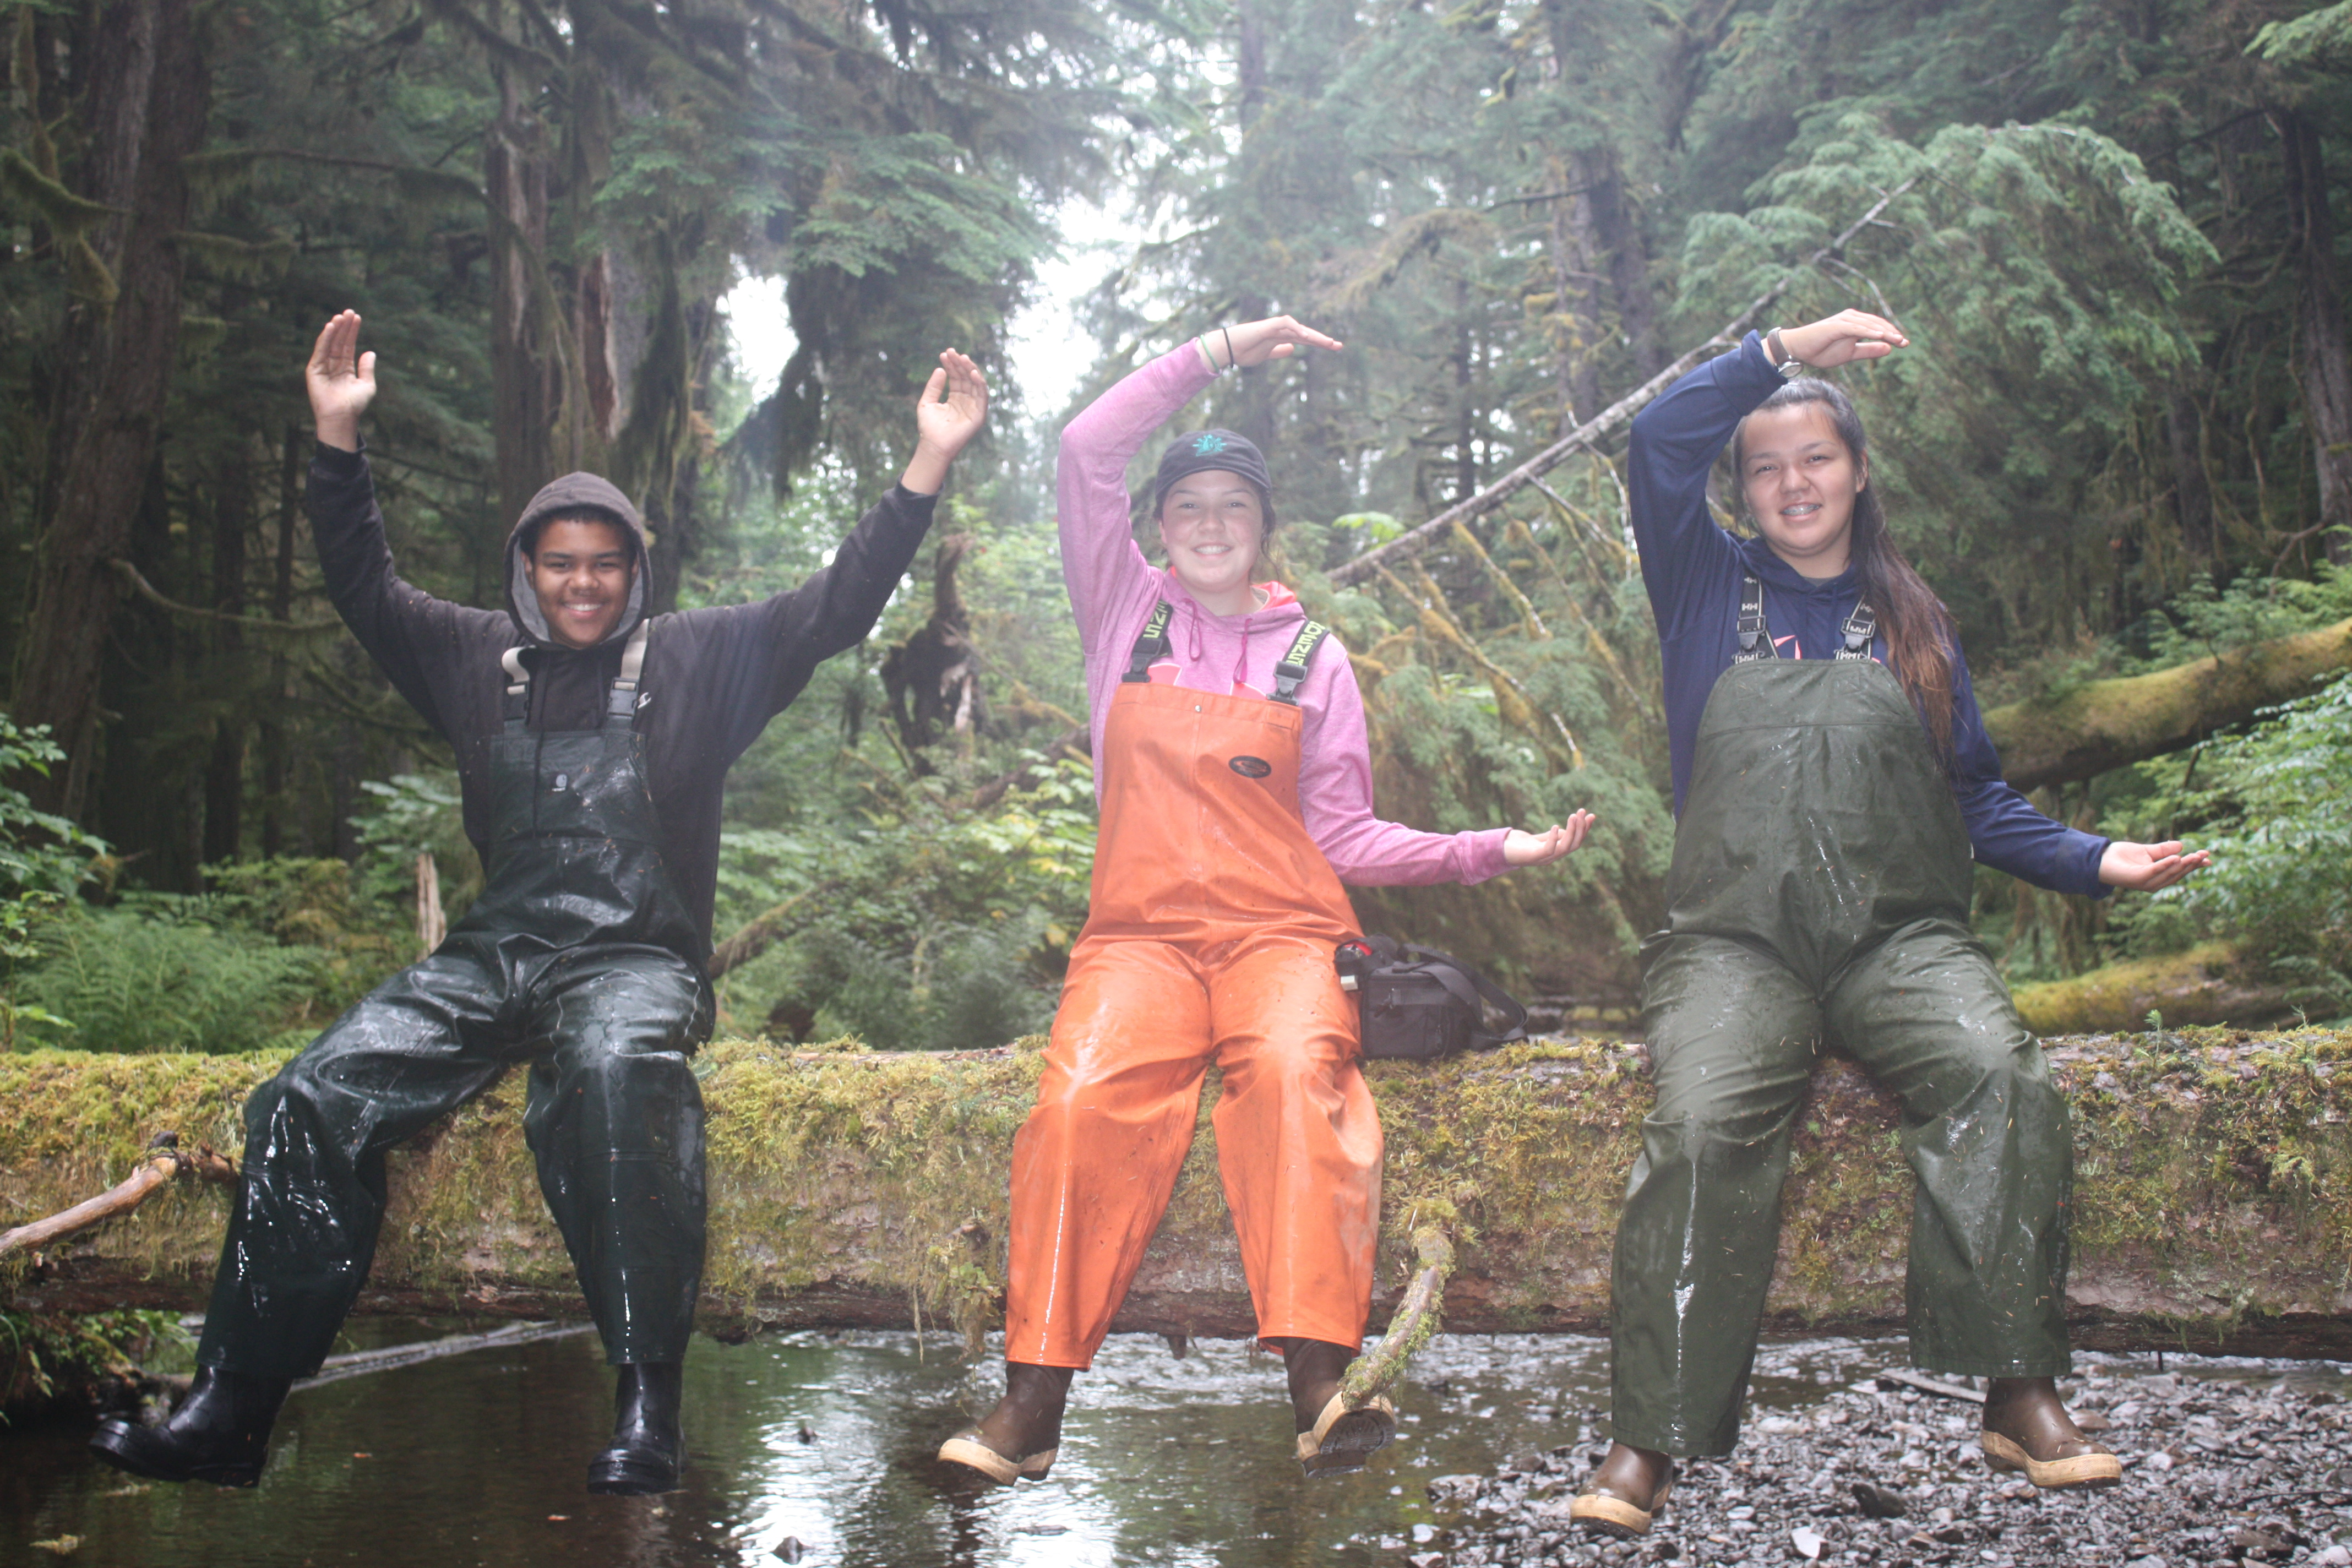 Photo: Group of three Angoon Youth Conservation Corps members pose for the camera making the YCC symbol in the YMCA style